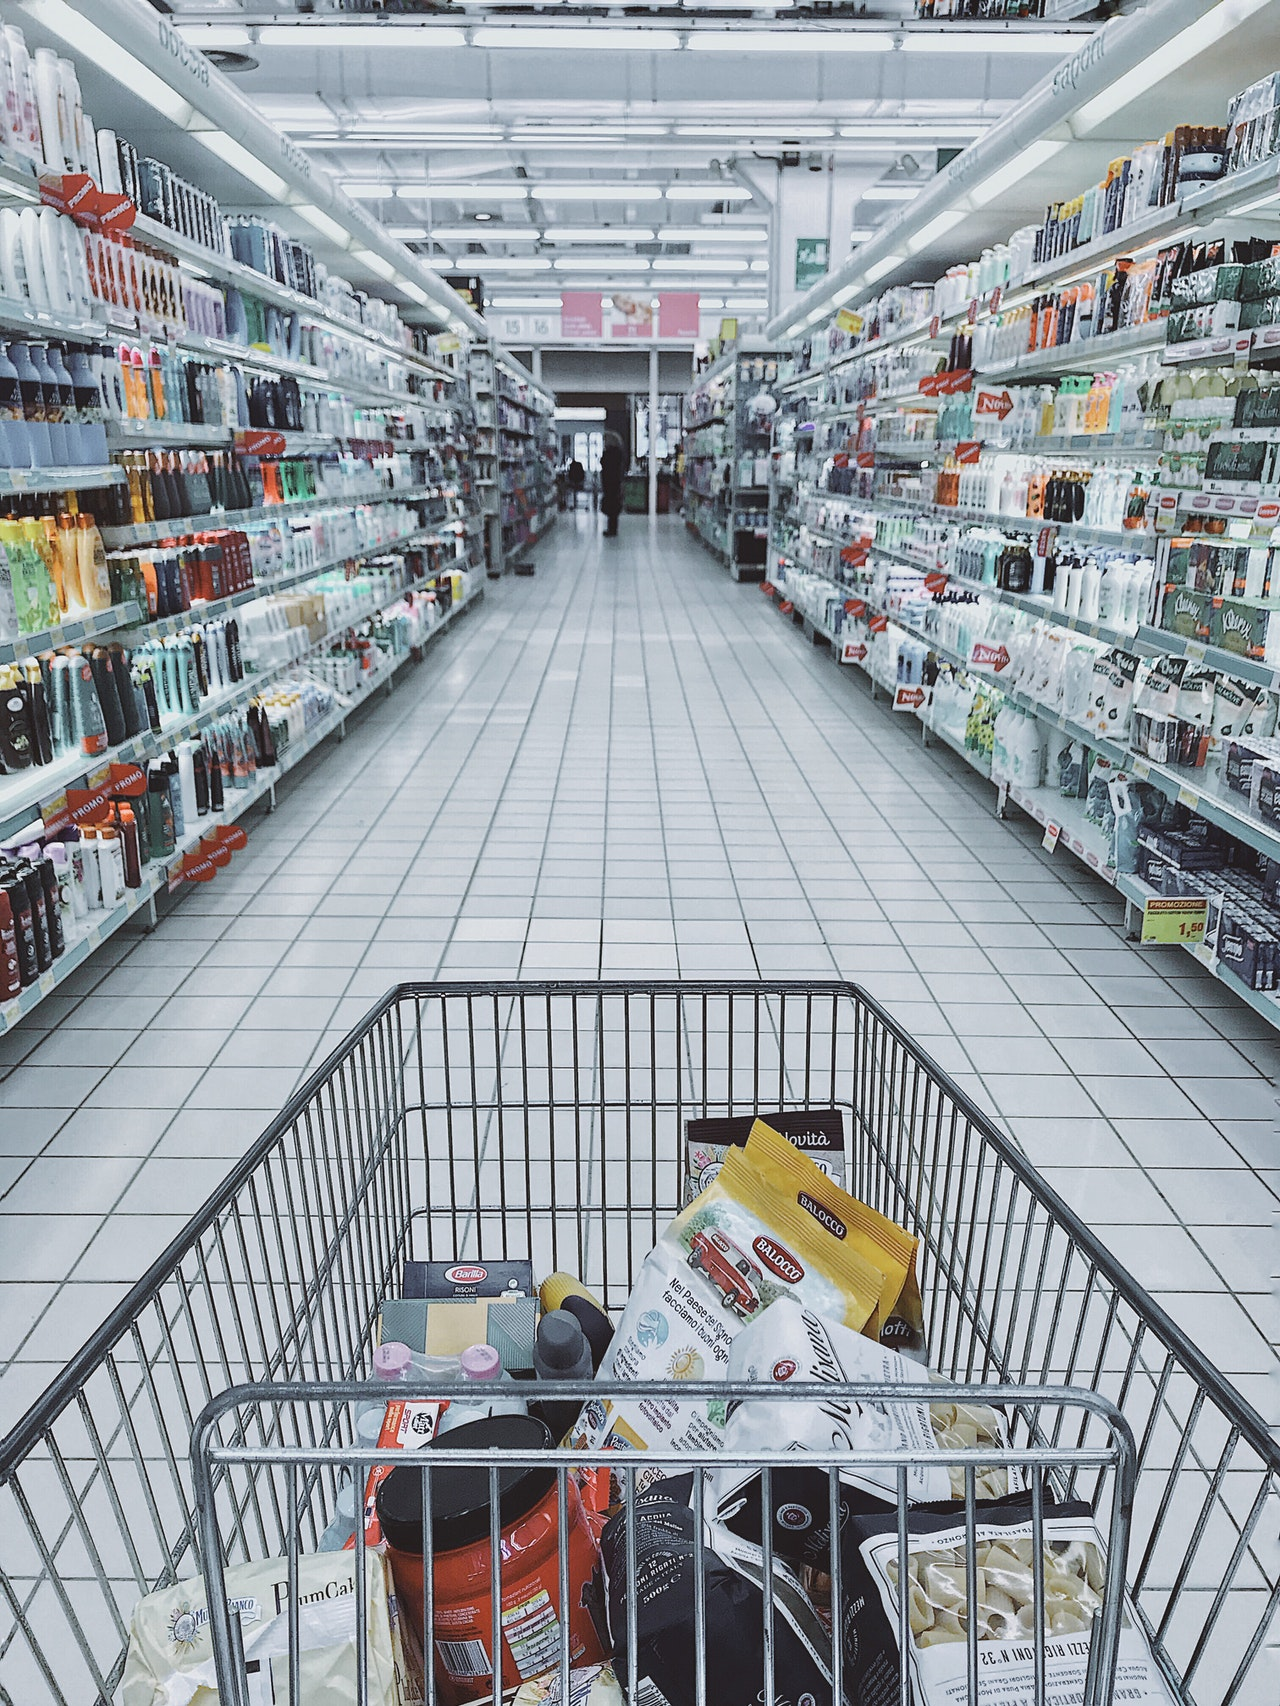 Shopping cart filled with CPG brands.